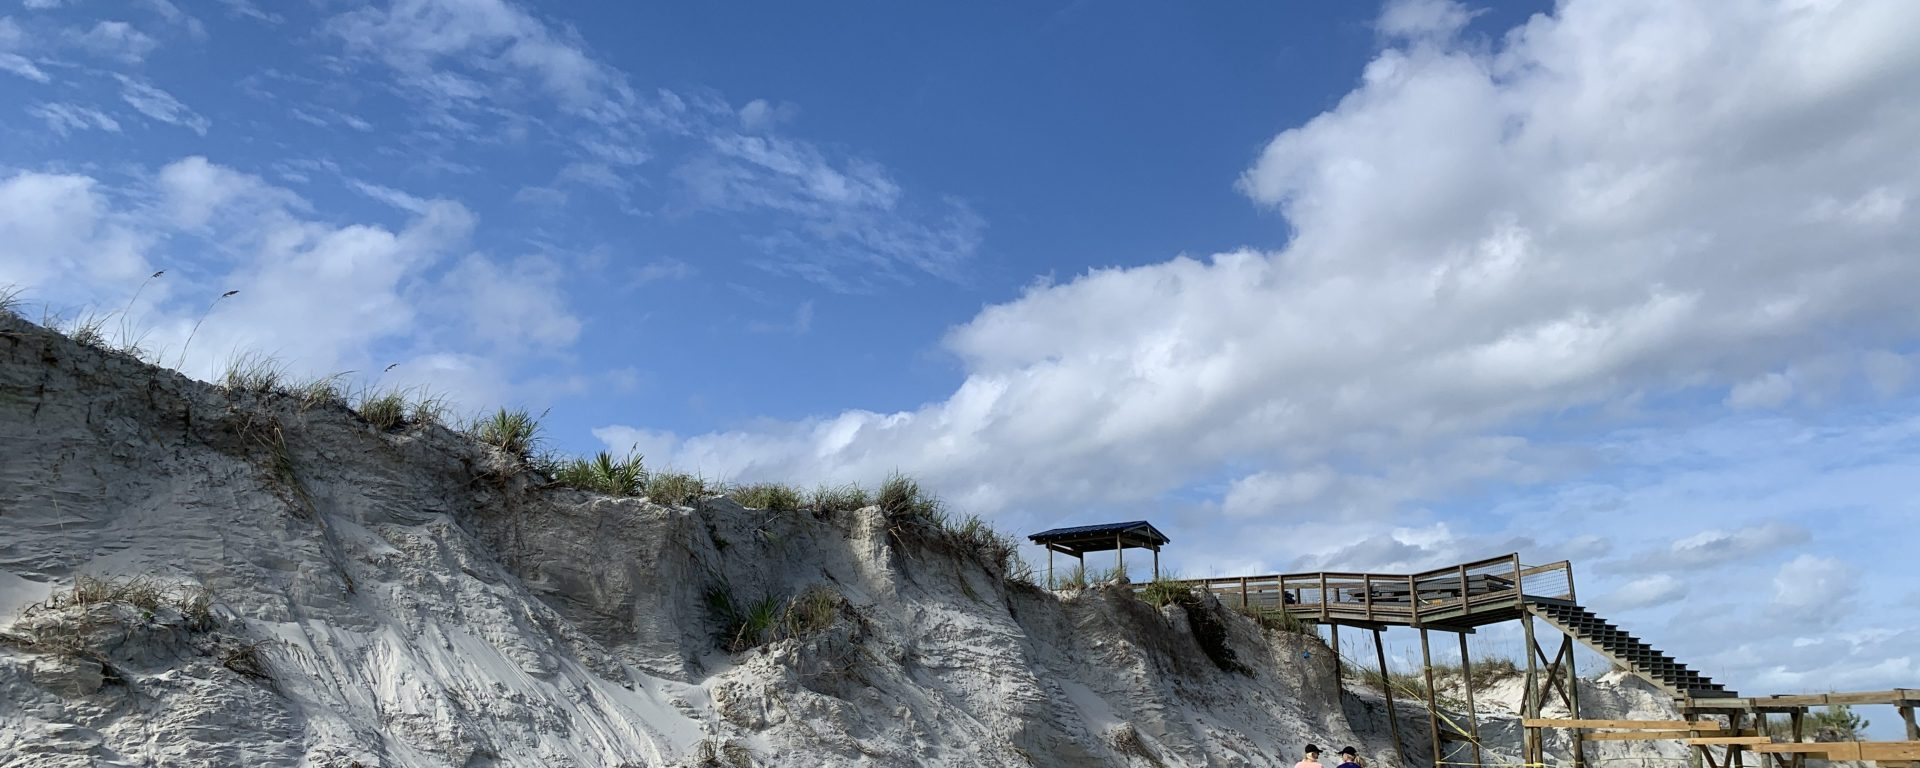 Volusia County florida beach erosion of sand dunes and walkways